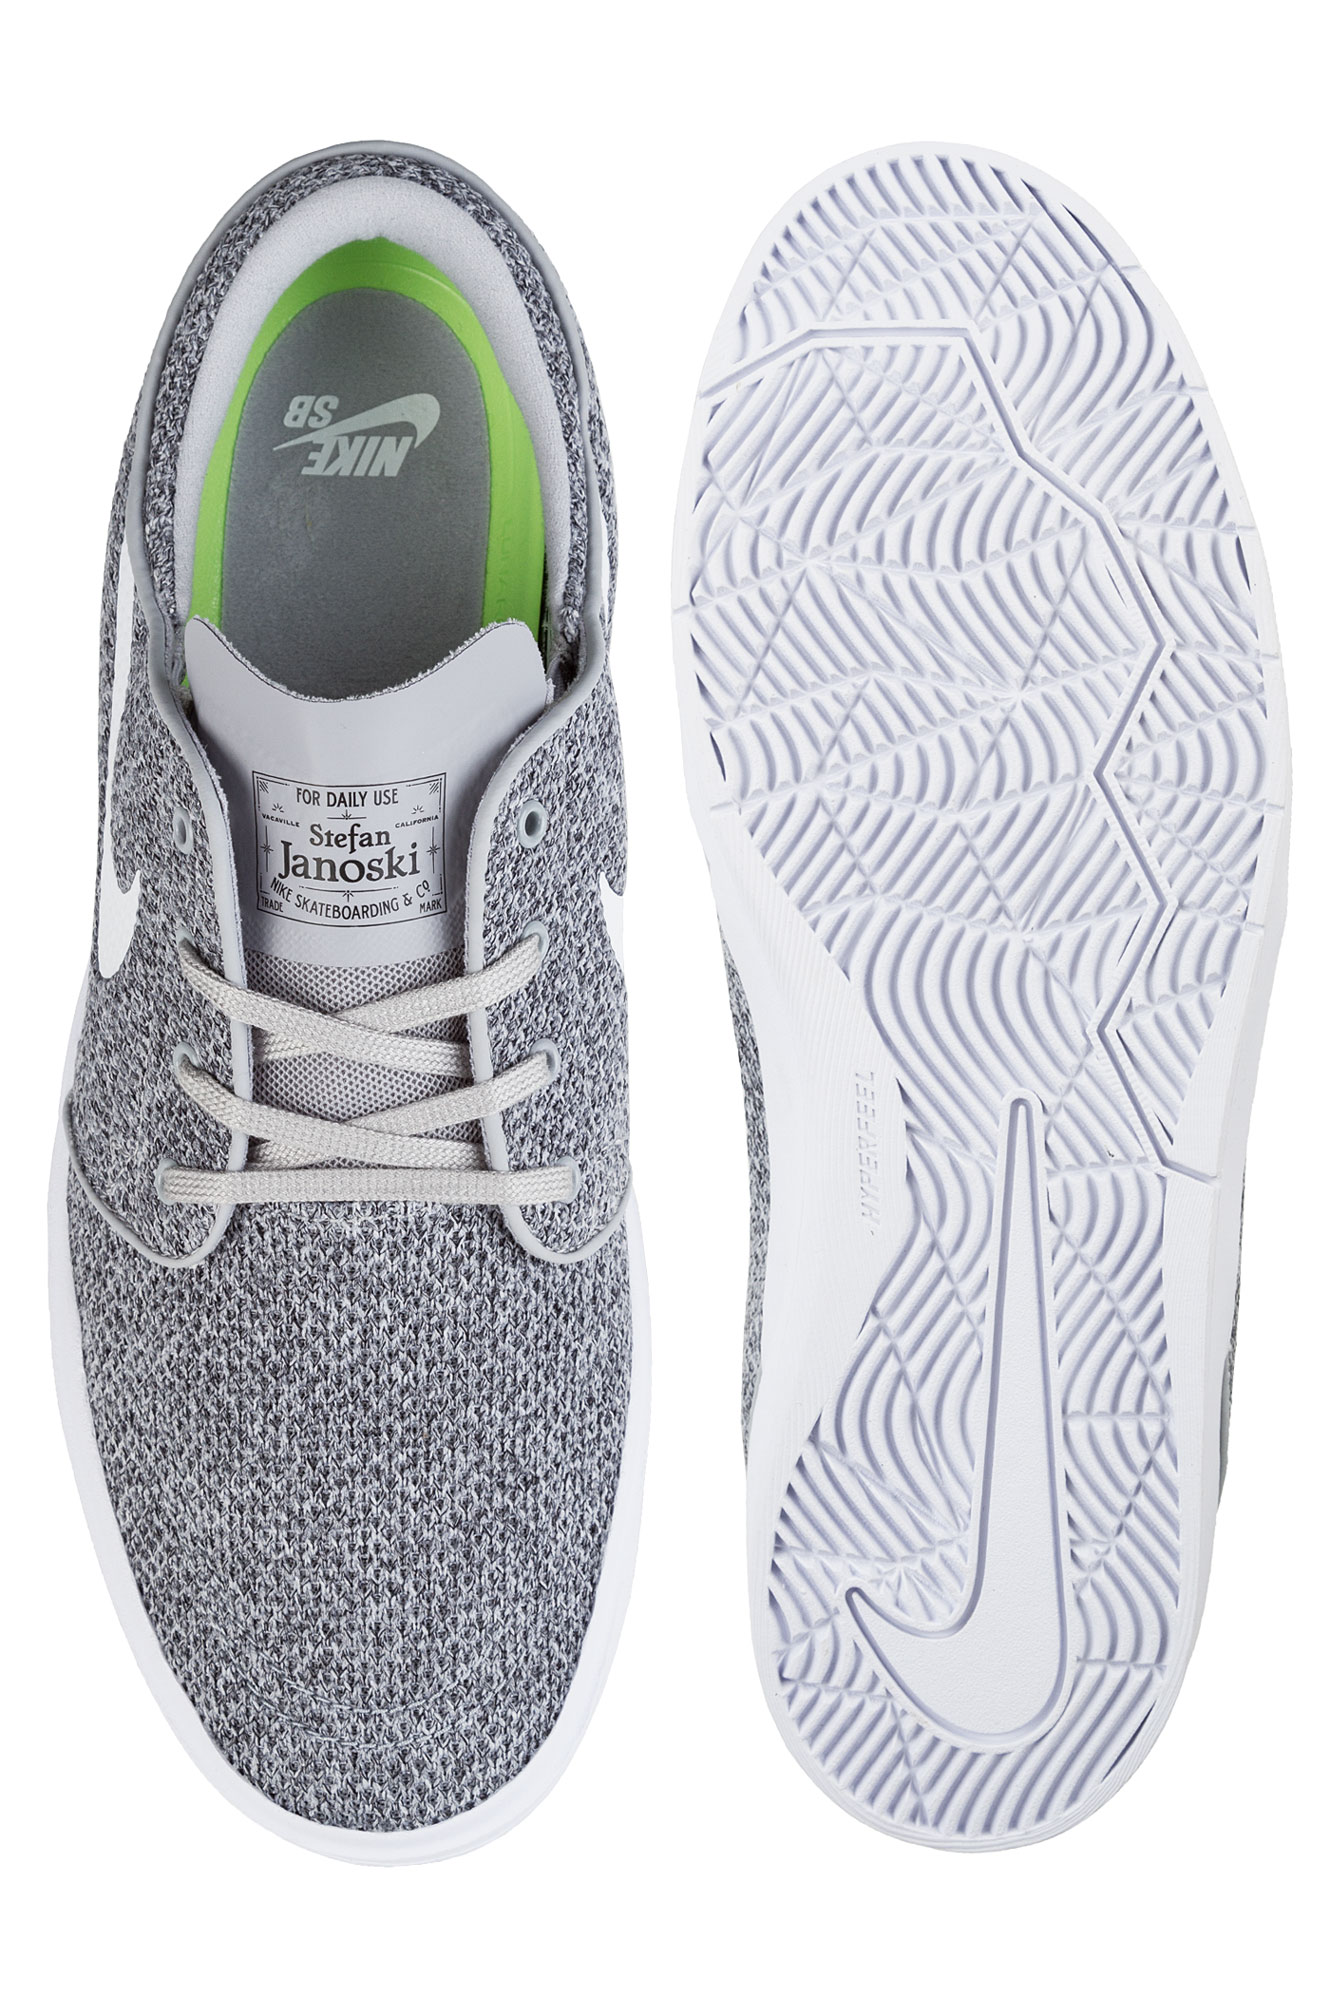 low priced 0108d 669d3 ... Nike SB Stefan Janoski Hyperfeel Mesh Chaussure (wolf grey white) ...